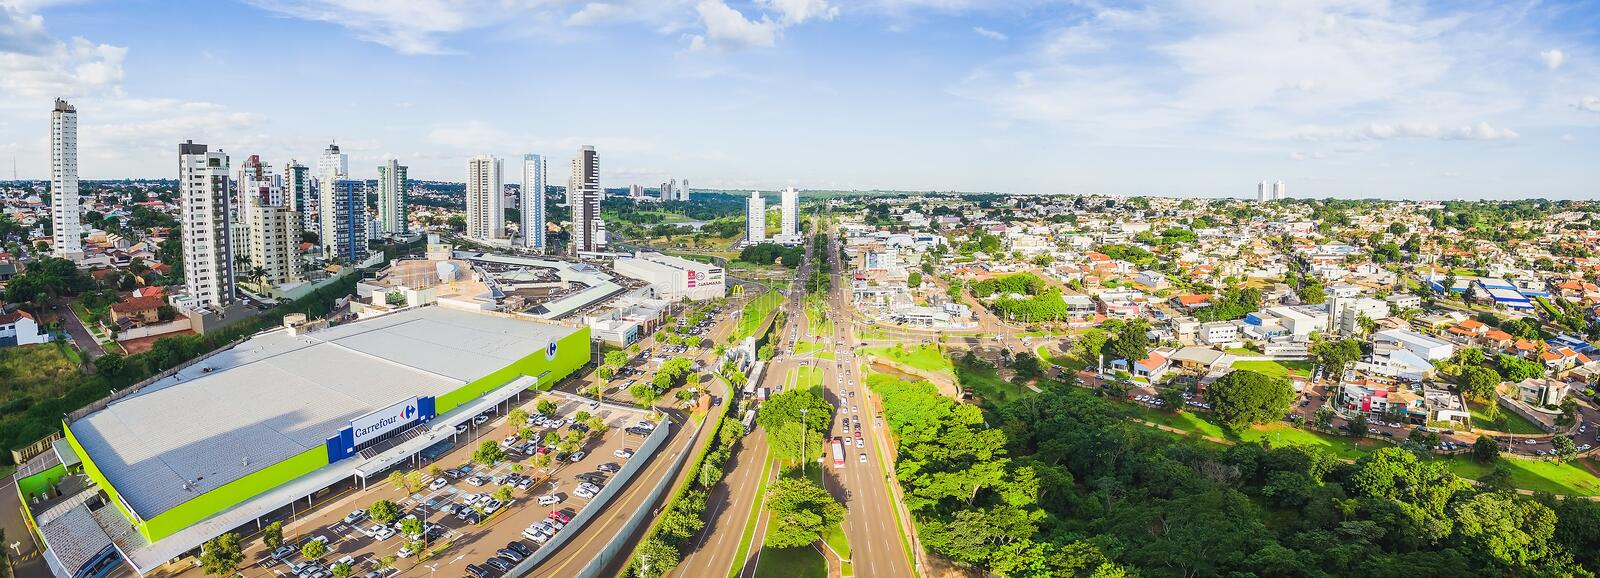 Aerial view from Afonso Pena avenue towards to the Parque das Na stock image